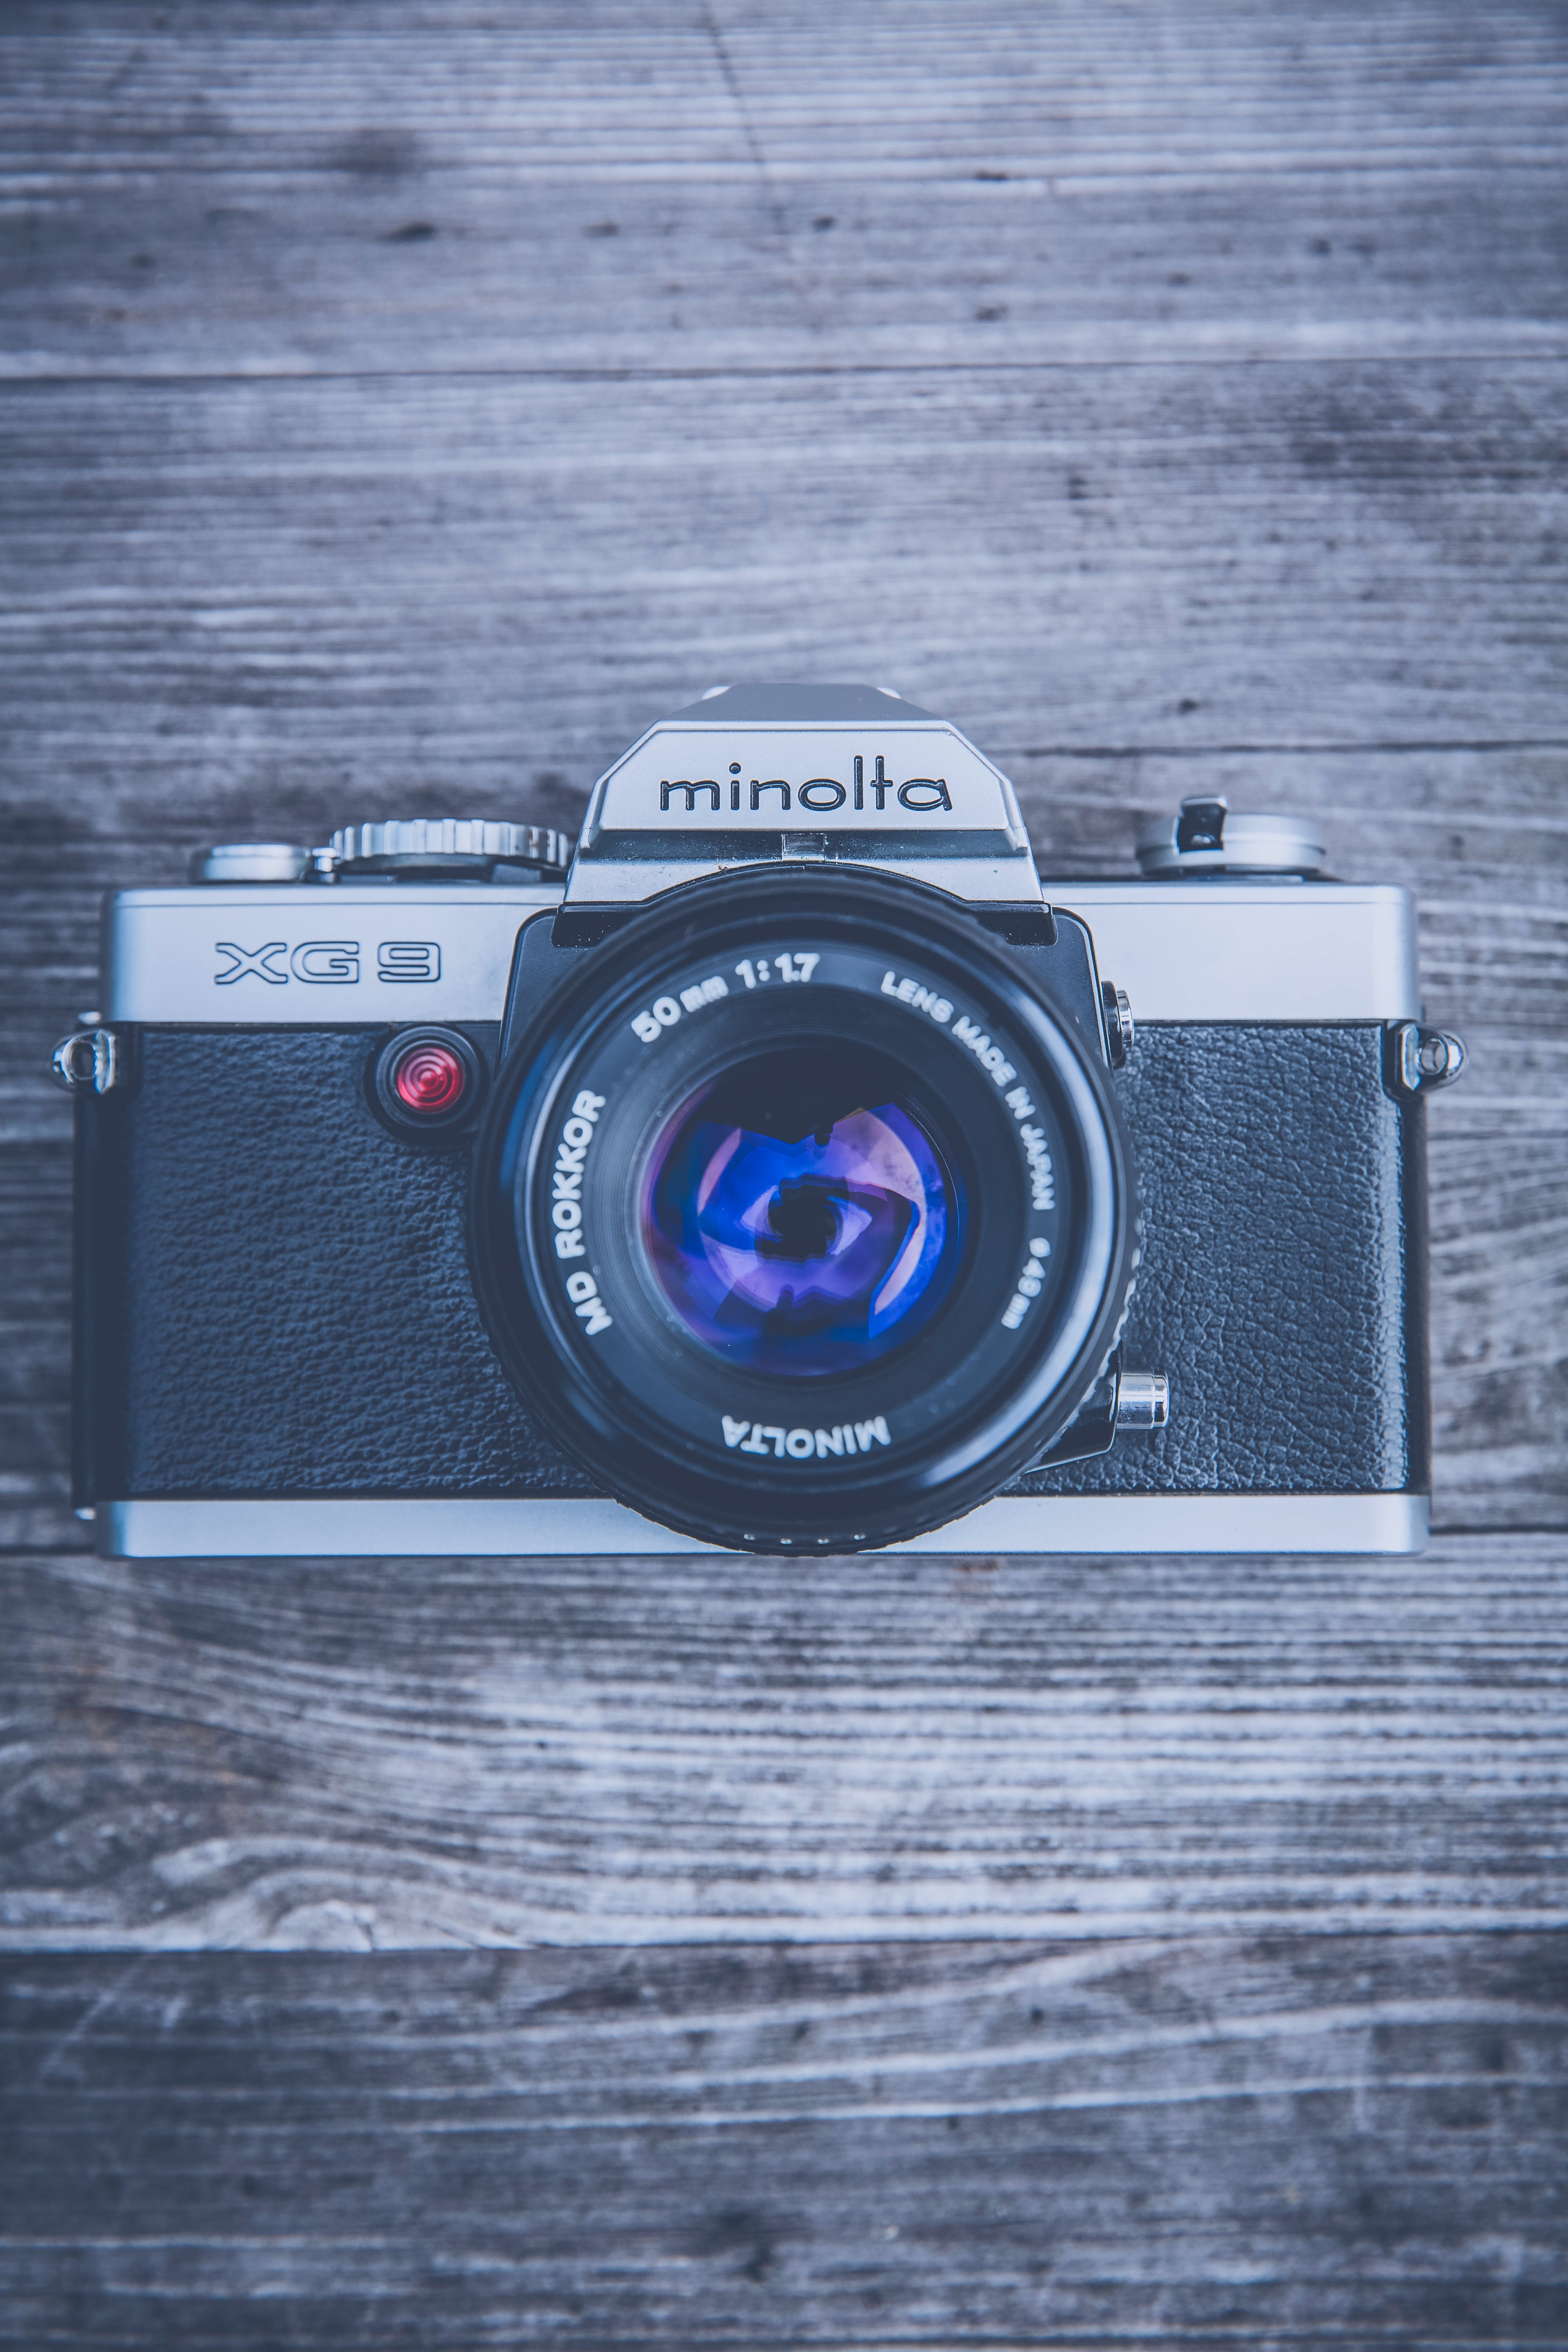 Silver and Black Minolta Camera in Close Up Photography